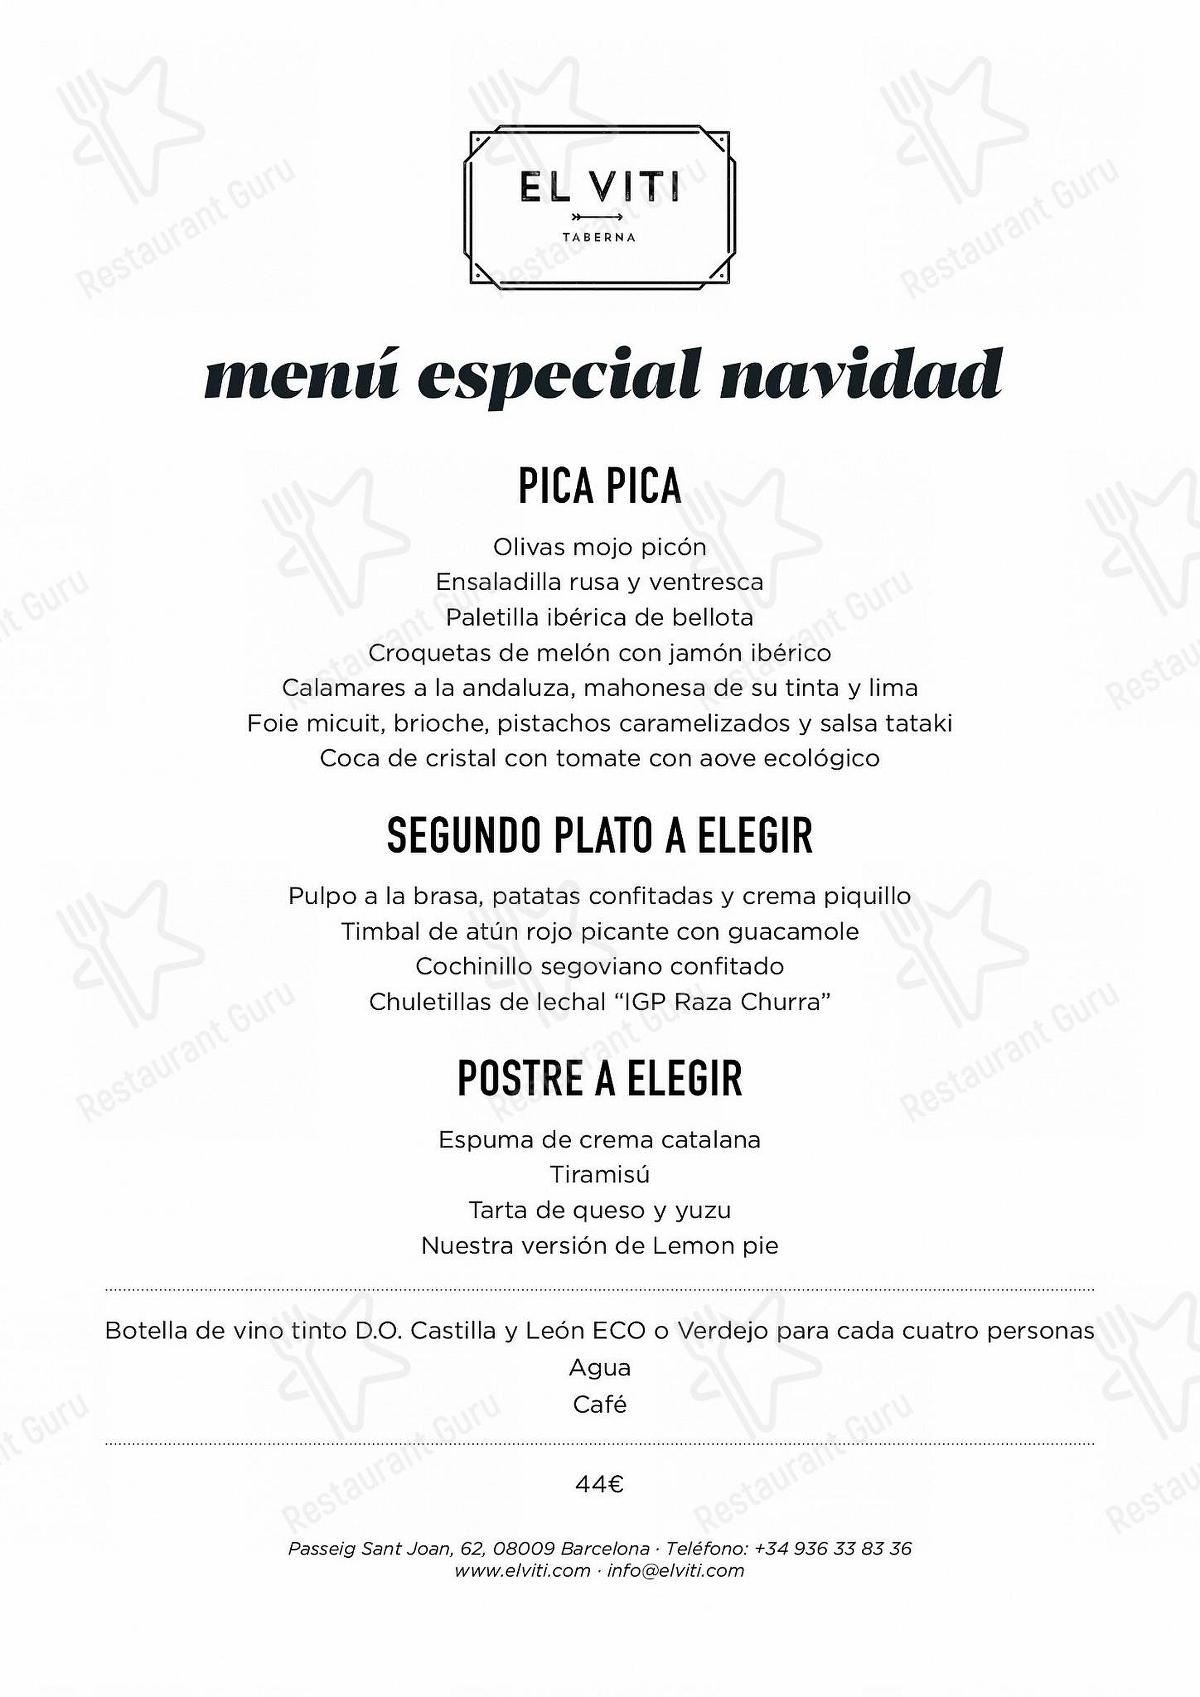 Carta de El Viti pub y bar